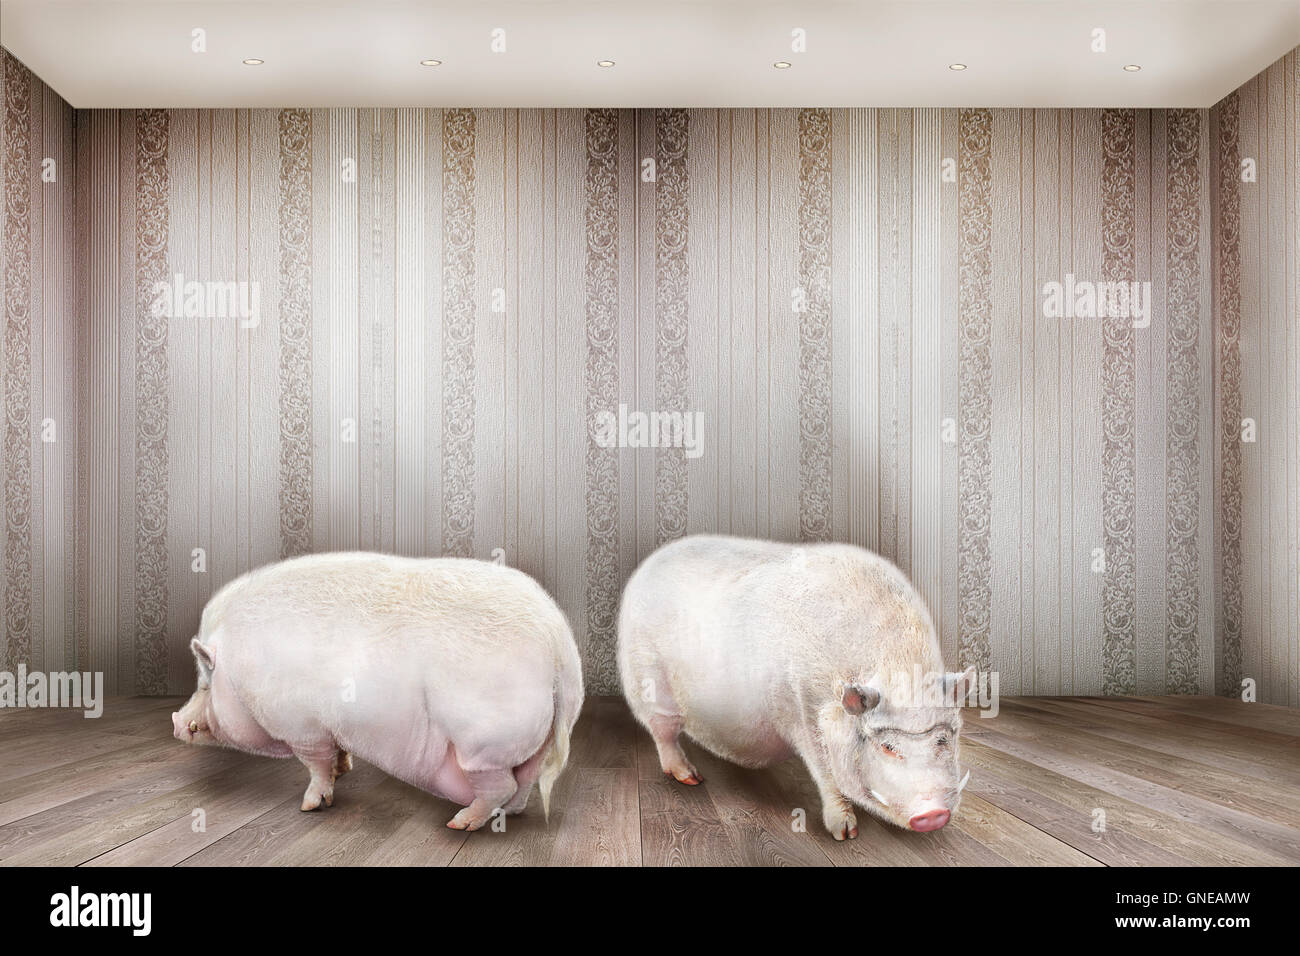 Creative concept. Two pigs stand in the room. - Stock Image